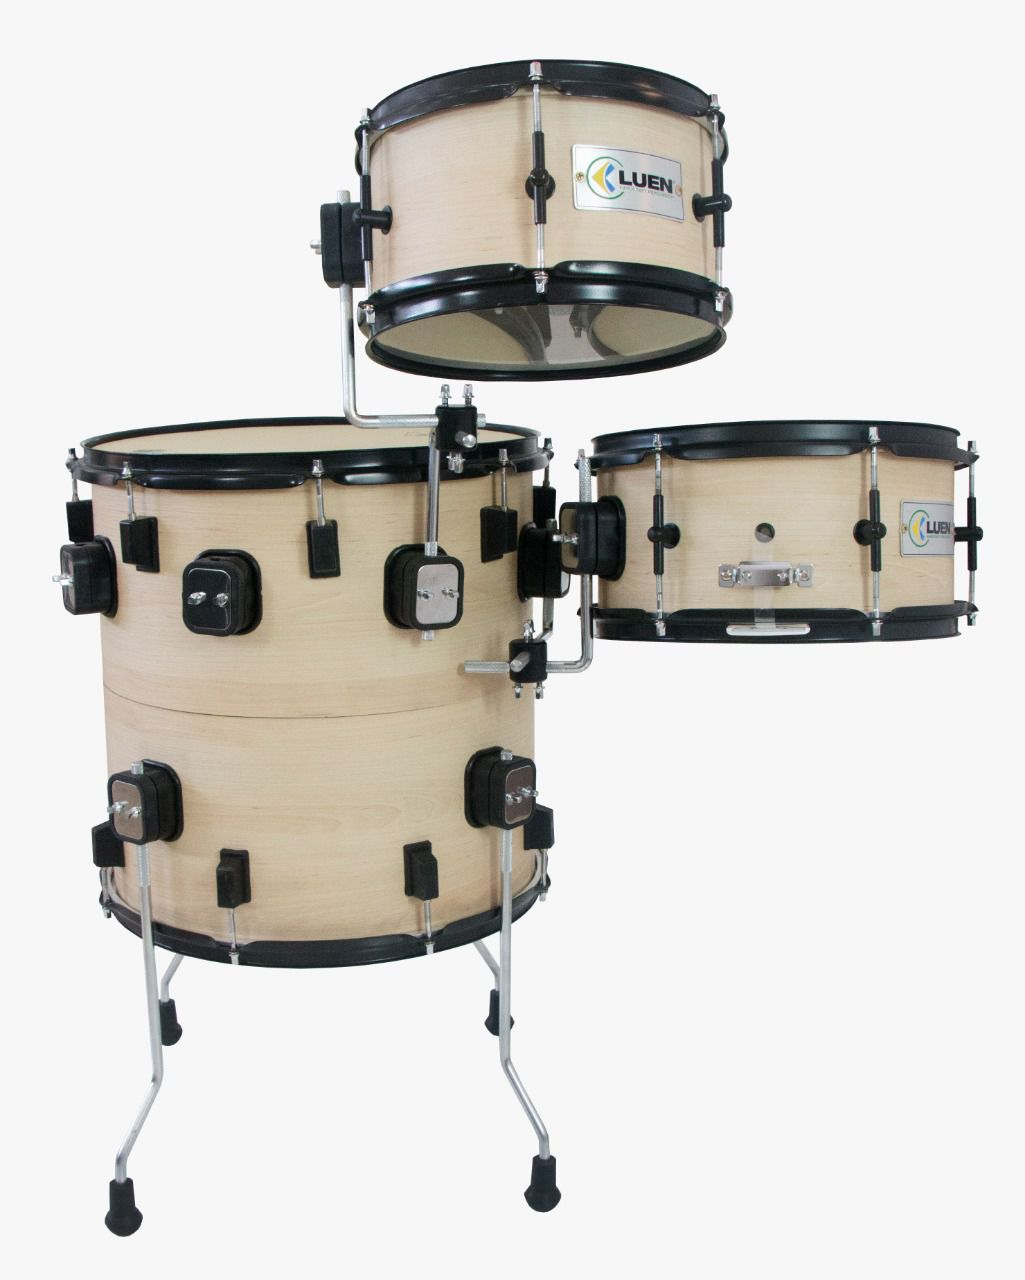 "BATERIA COMPACTA PUB THE VERTICAL DRUM OAK NATURAL - COMPOSTA POR SURDO/BUMBO 16"". CAIXA 12"" E TOM 10"" PELE VINTAGE JAZZ"